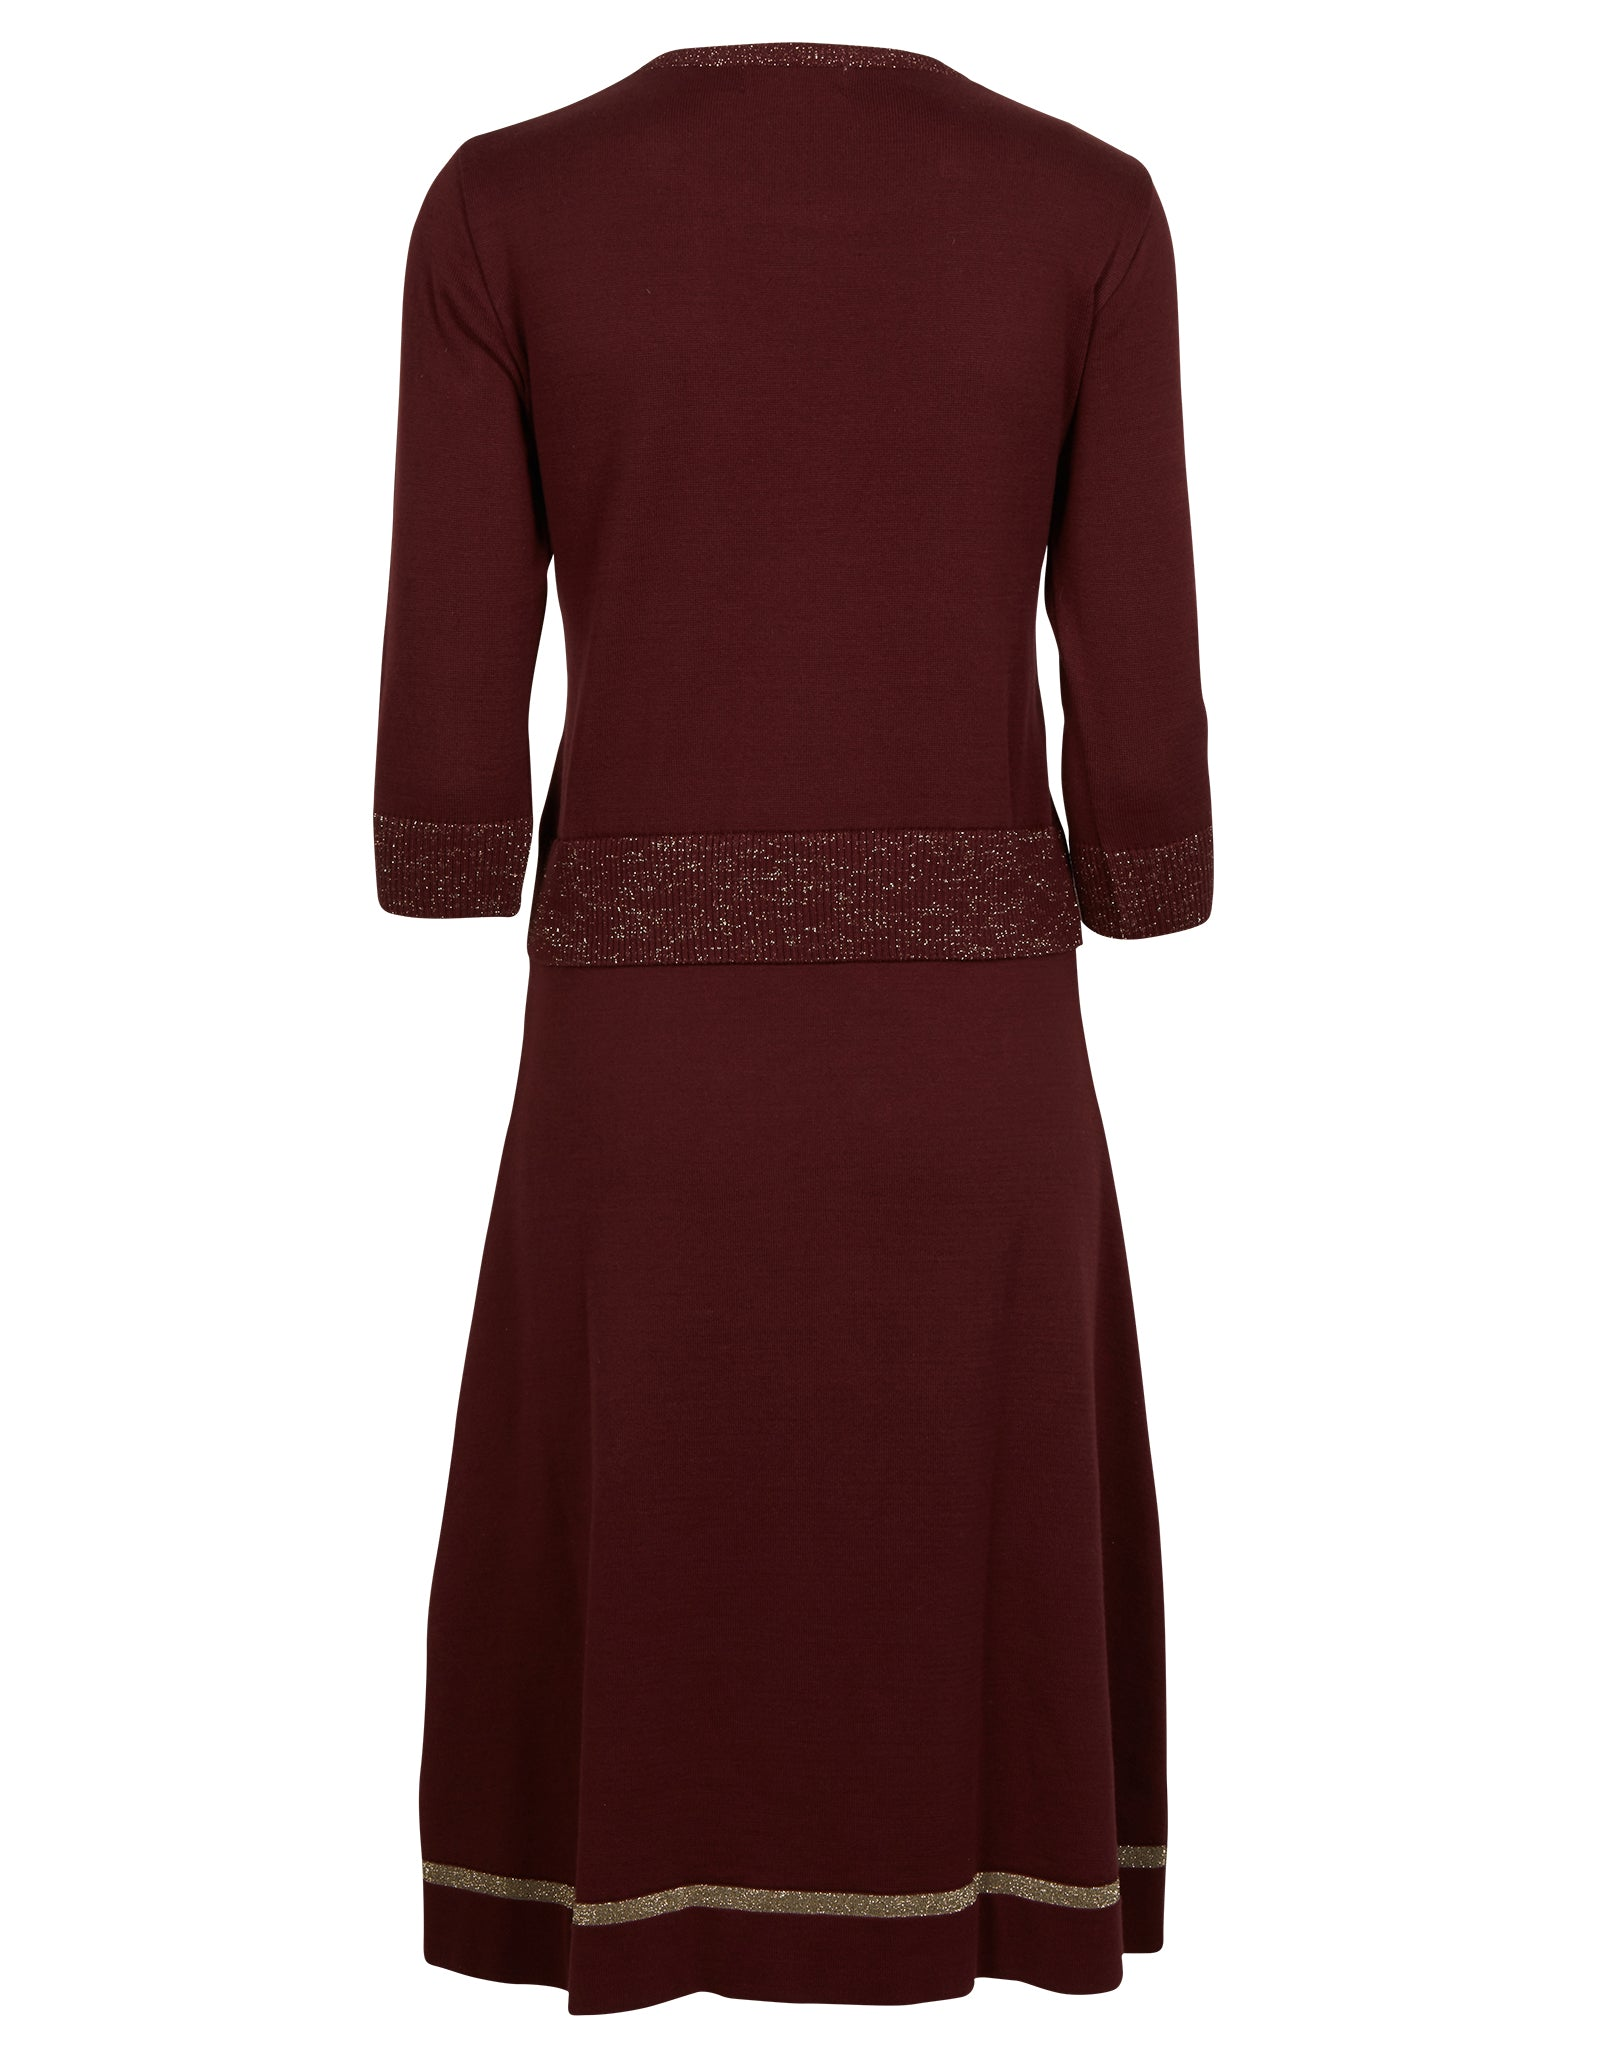 Otti Knitted Dress - Plum Sparkly - Organic Cotton